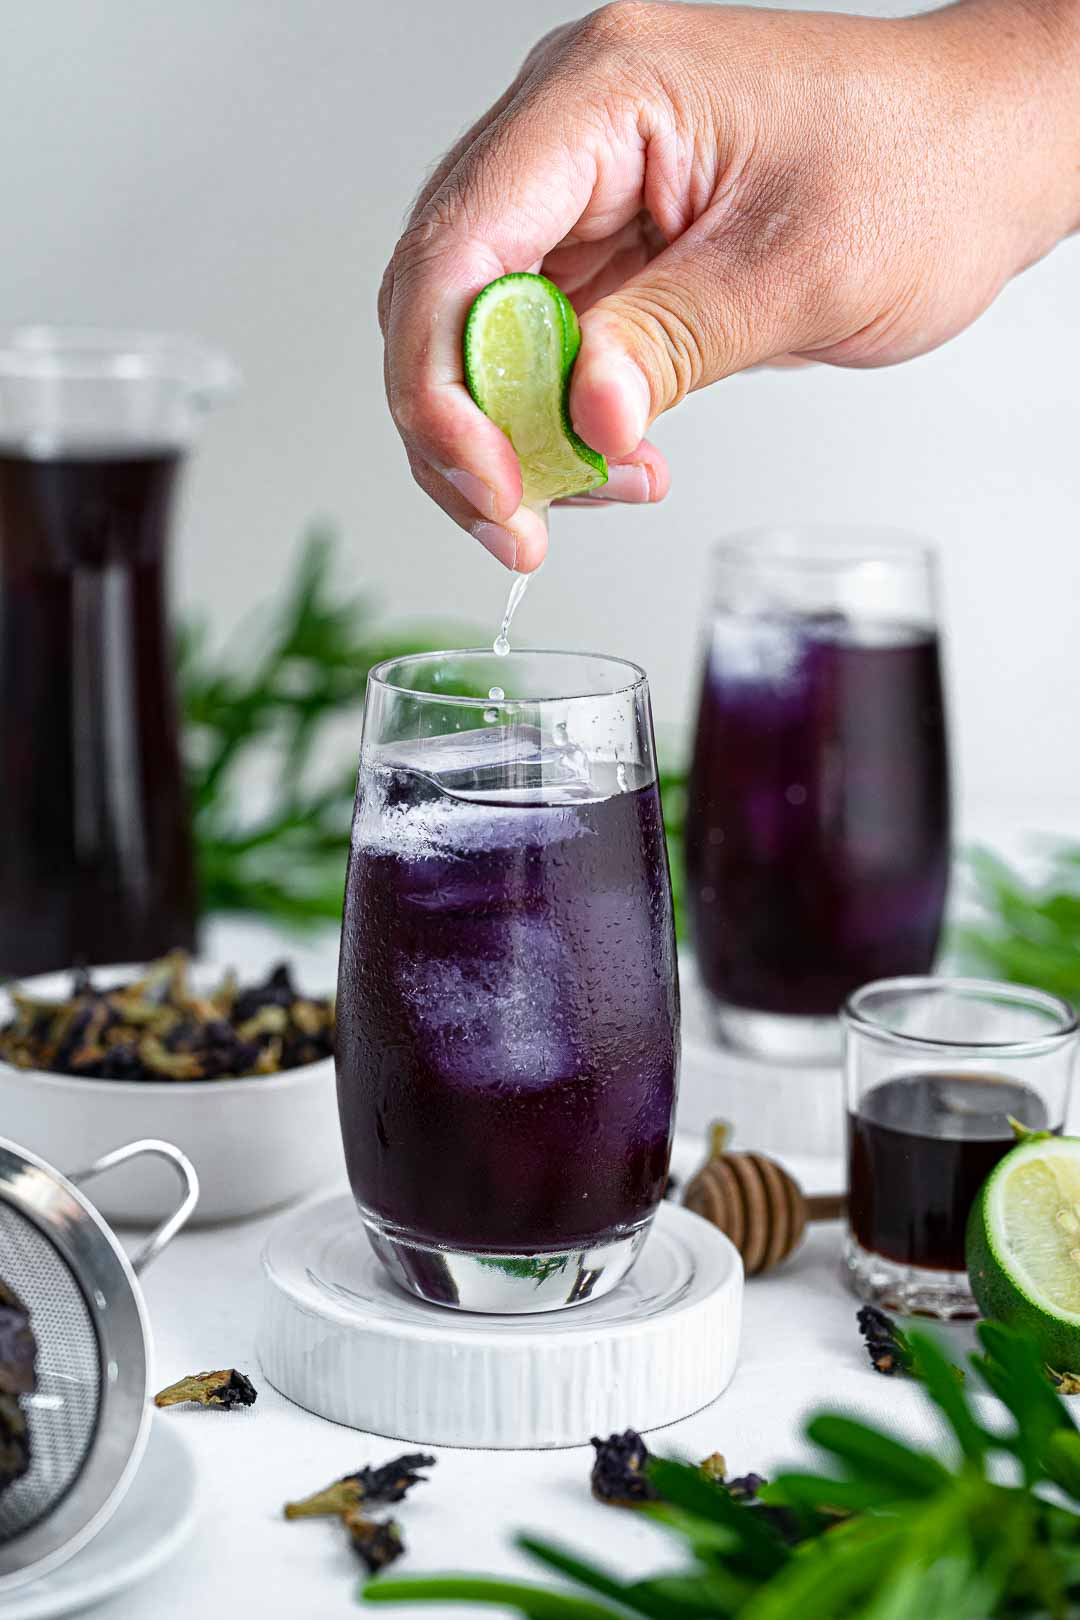 Lime Being Squeezed Into A Glass Of Butterfly Pea Tea Or Blue Tea